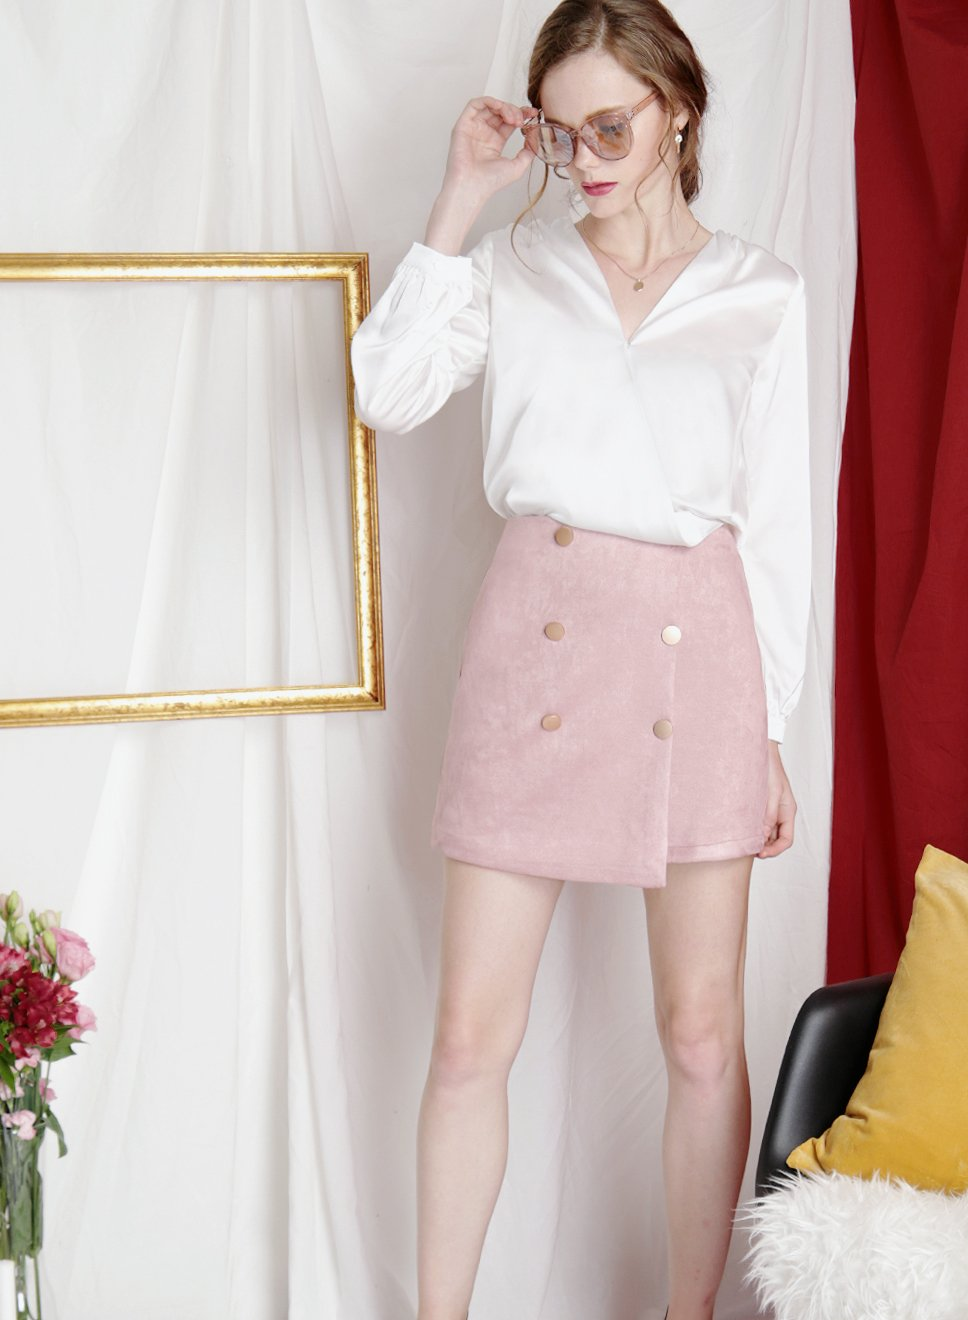 SHIMMER Silk Wrap Top (White) at $31.50 only sold at And Well Dressed Online Fashion Store Singapore